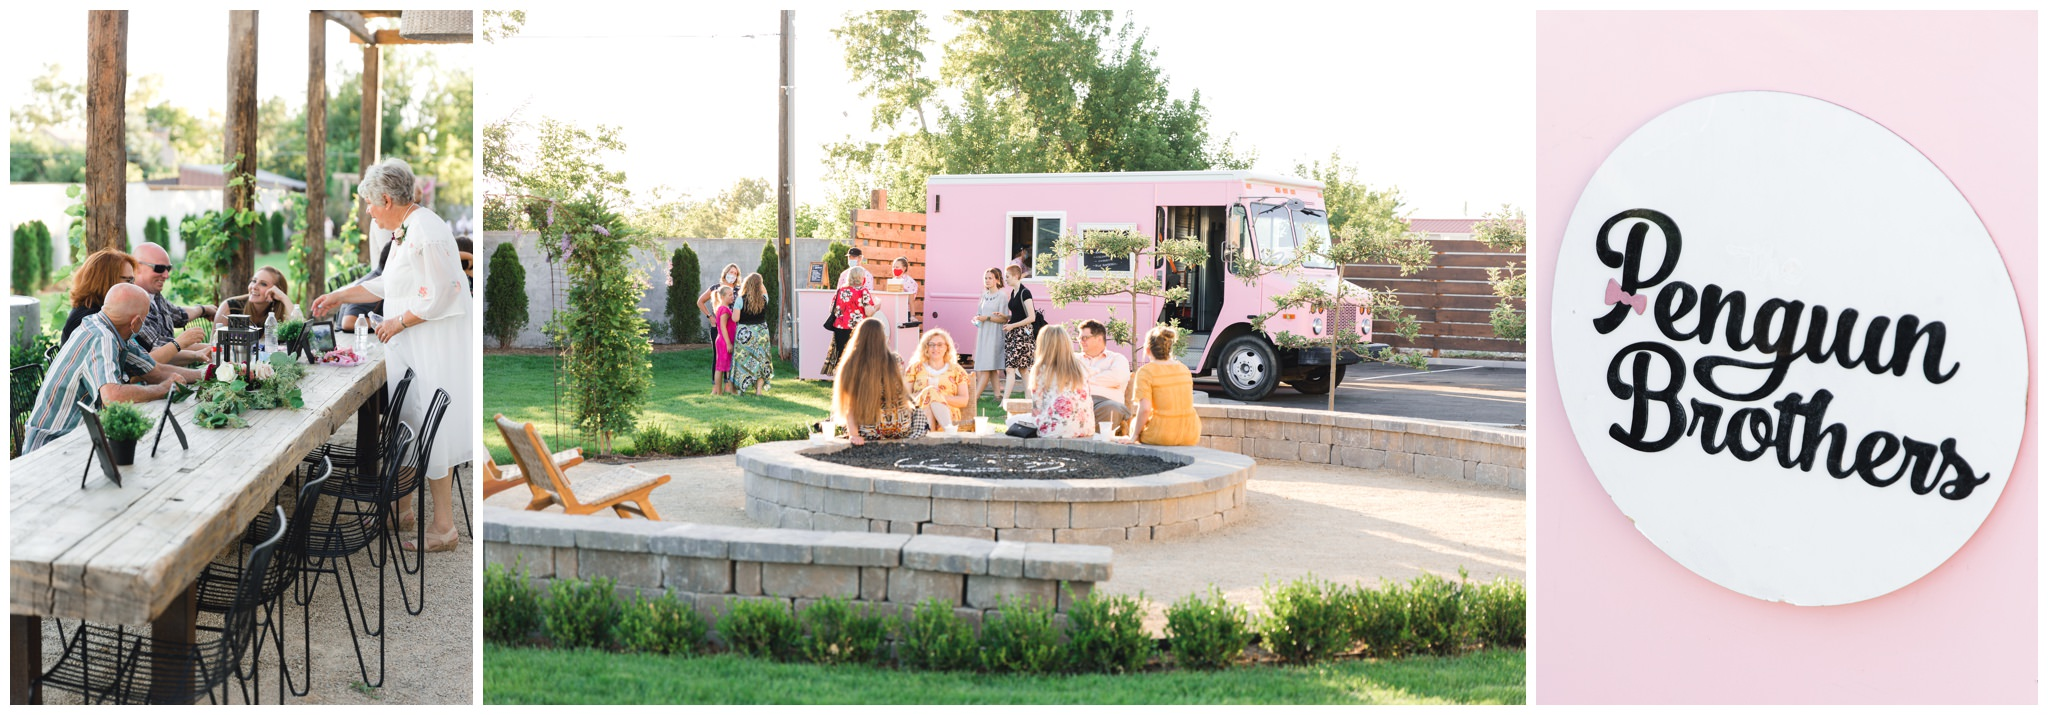 Penguin brothers pink truck for serving ice cream sandwiches at weddings in the Summer